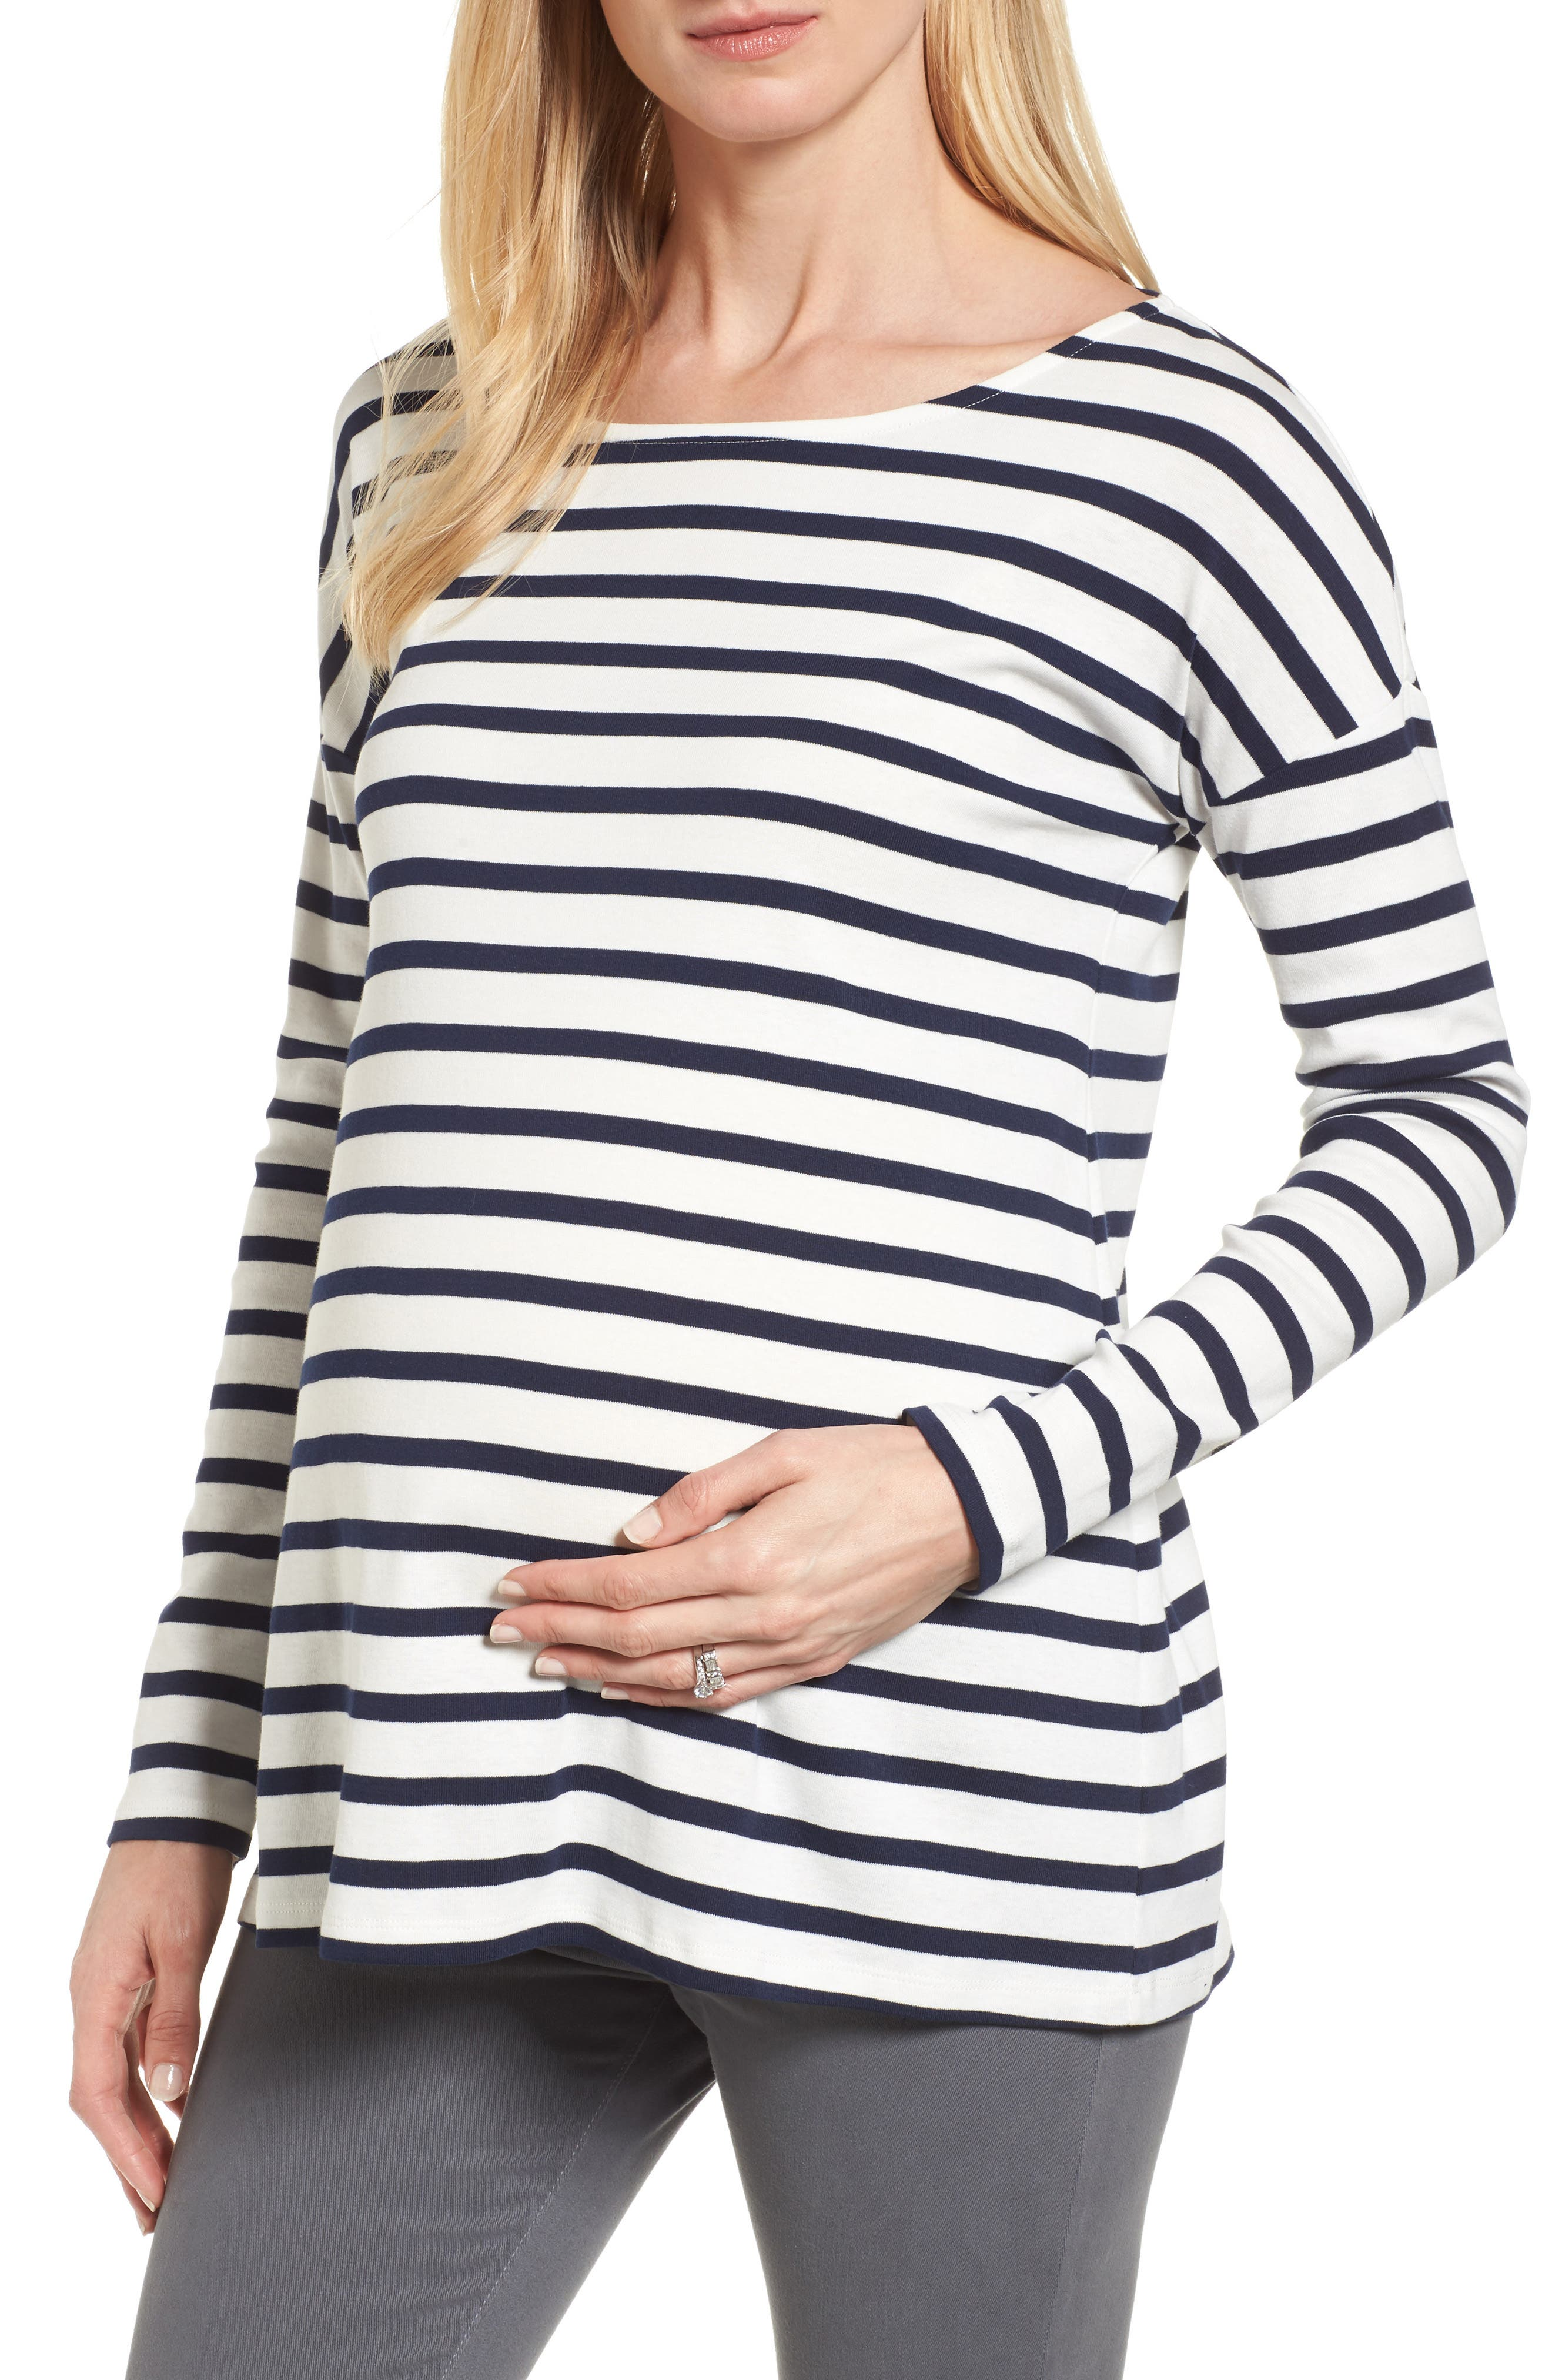 Caia Stripe Maternity Top,                             Main thumbnail 1, color,                             Navy/ White Stripe